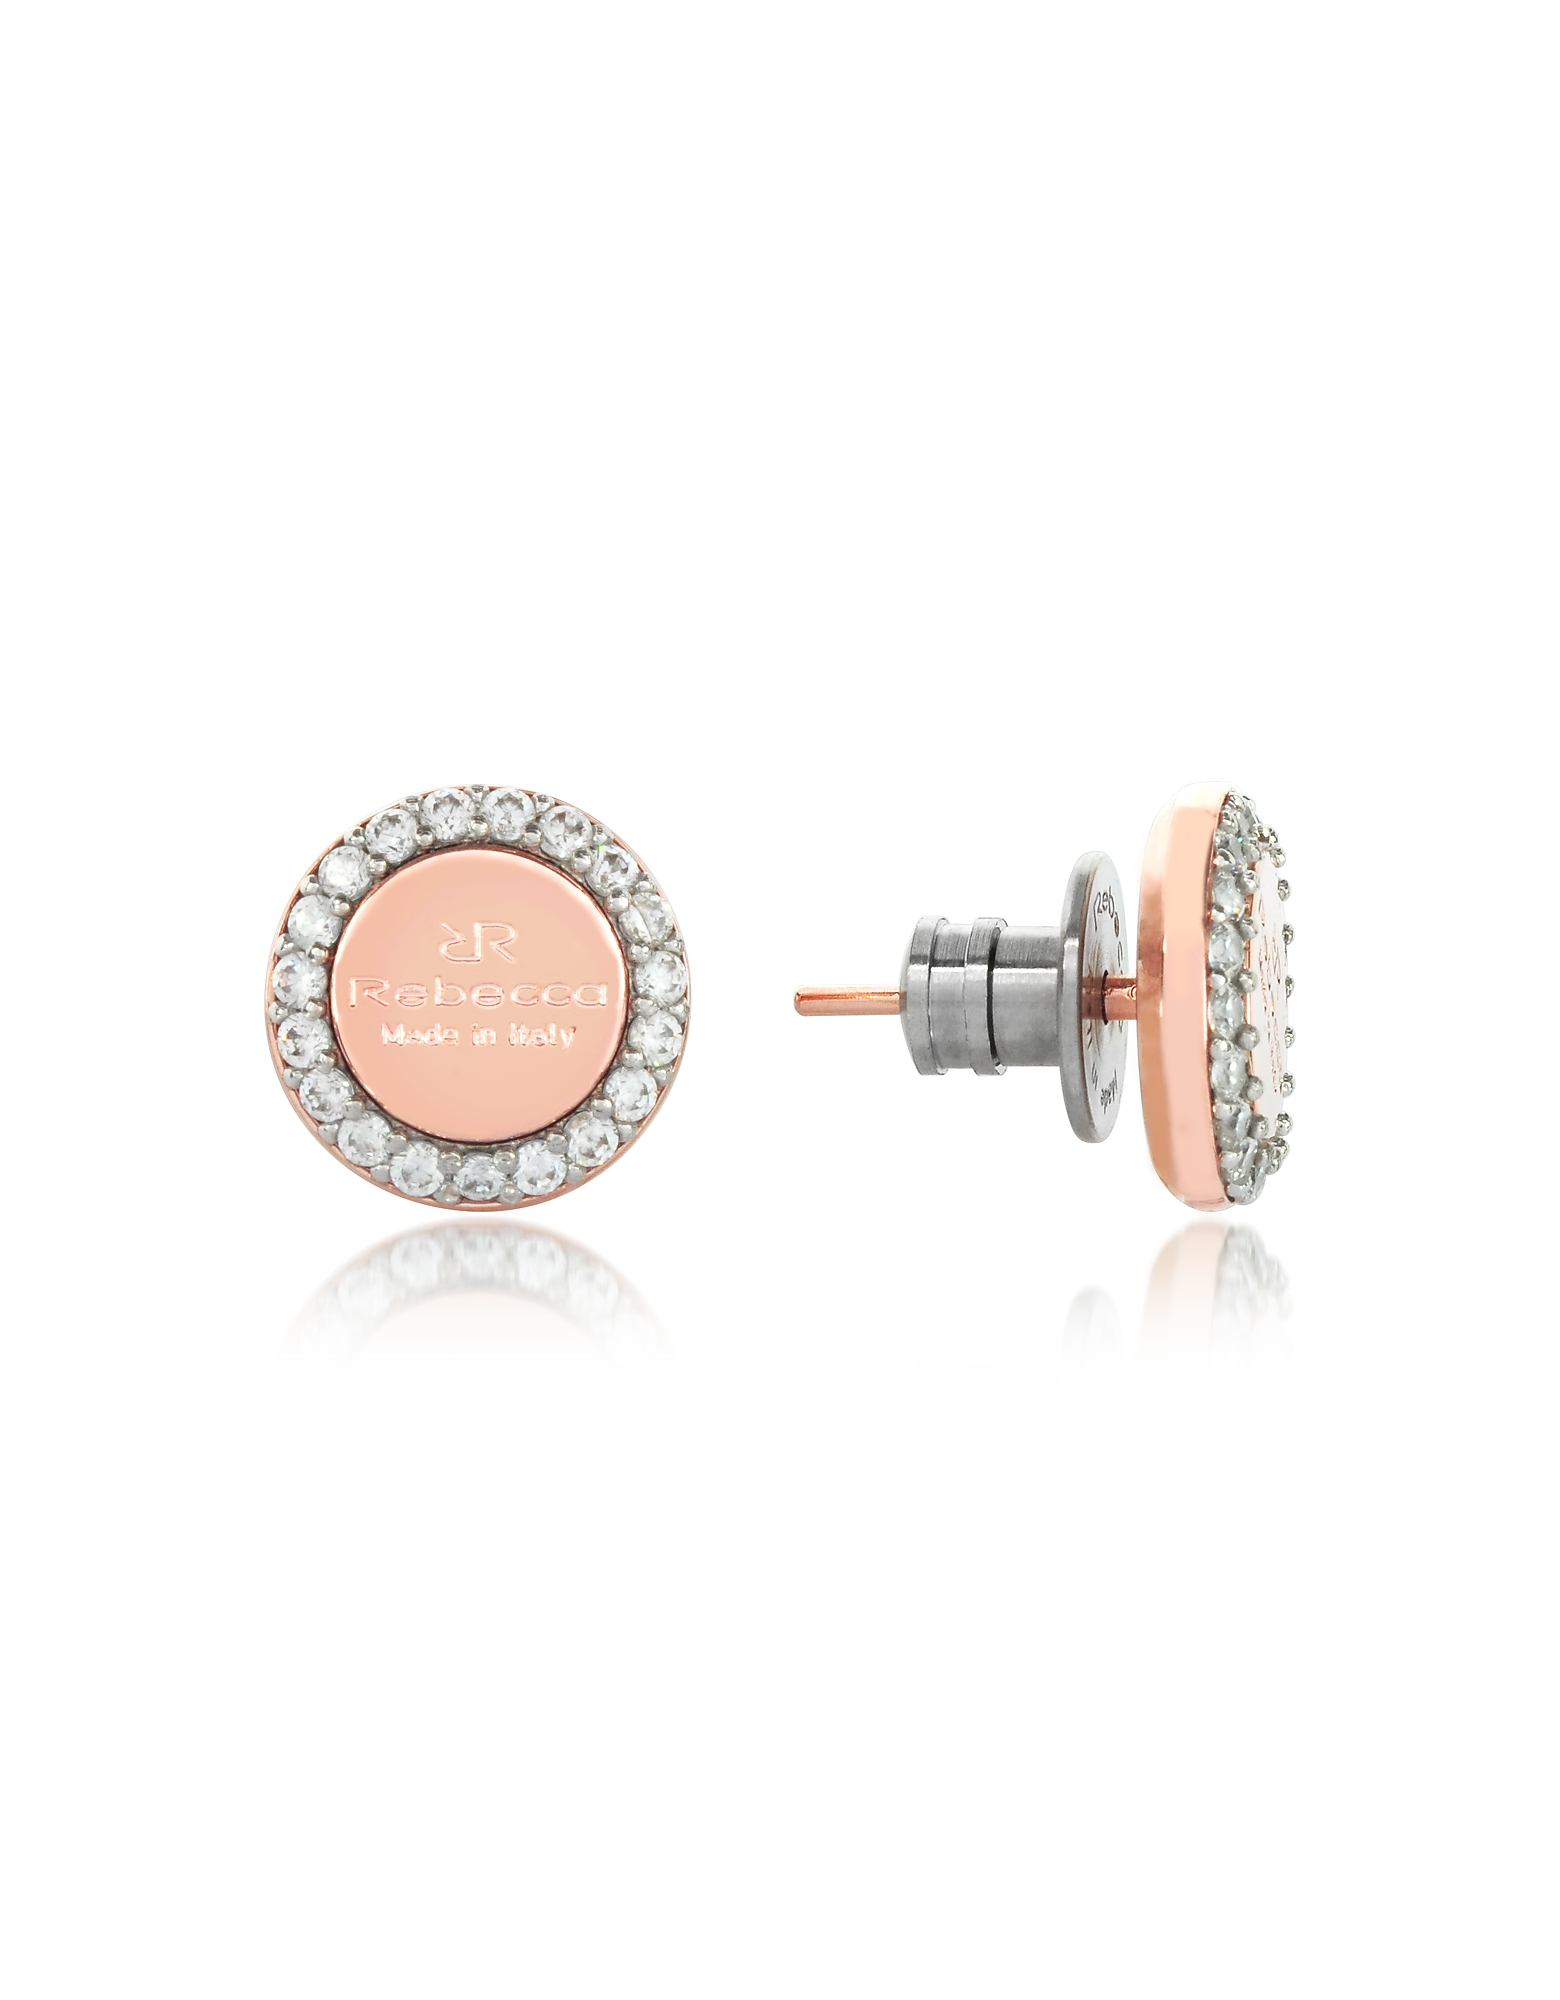 Boulevard Stone Rose Gold Over Bronze Stud Earrings w/Stones